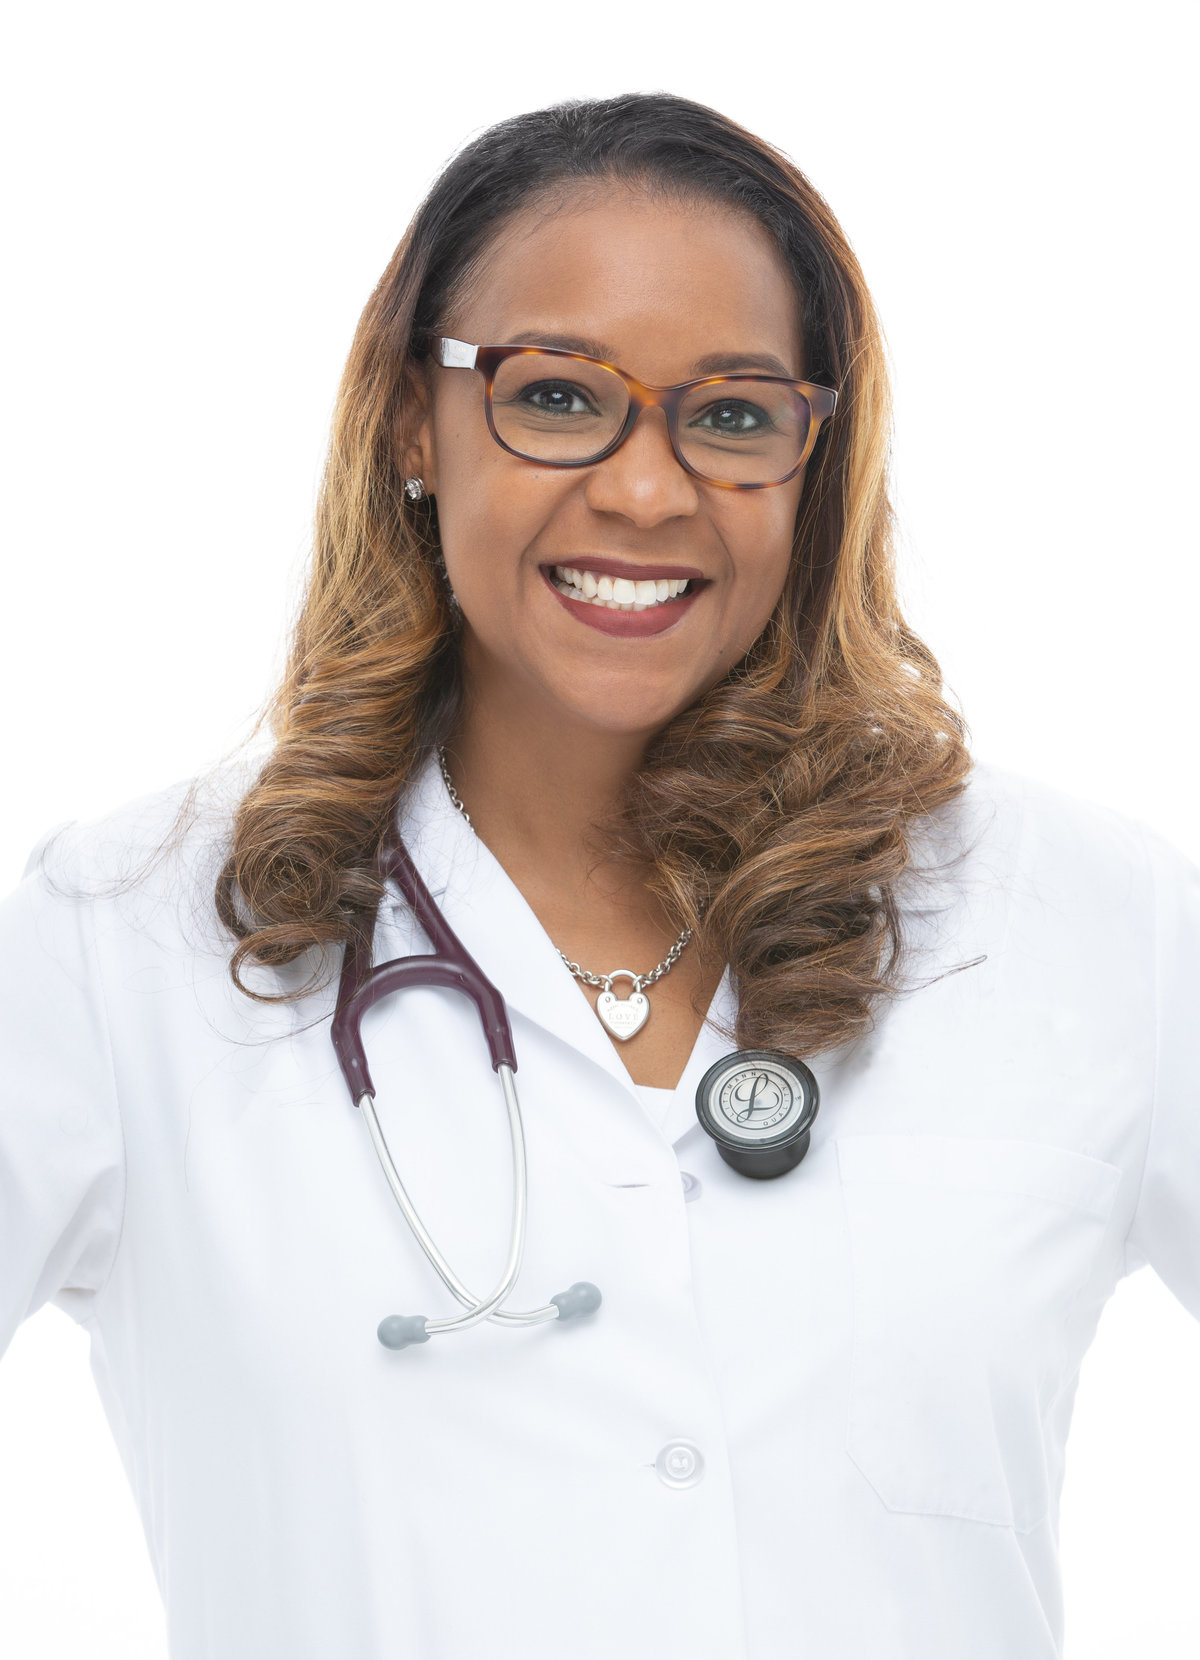 An African American woman doctor with glasses poses for a headshot on white background at Janel Lee Photography studios in Cincinnati